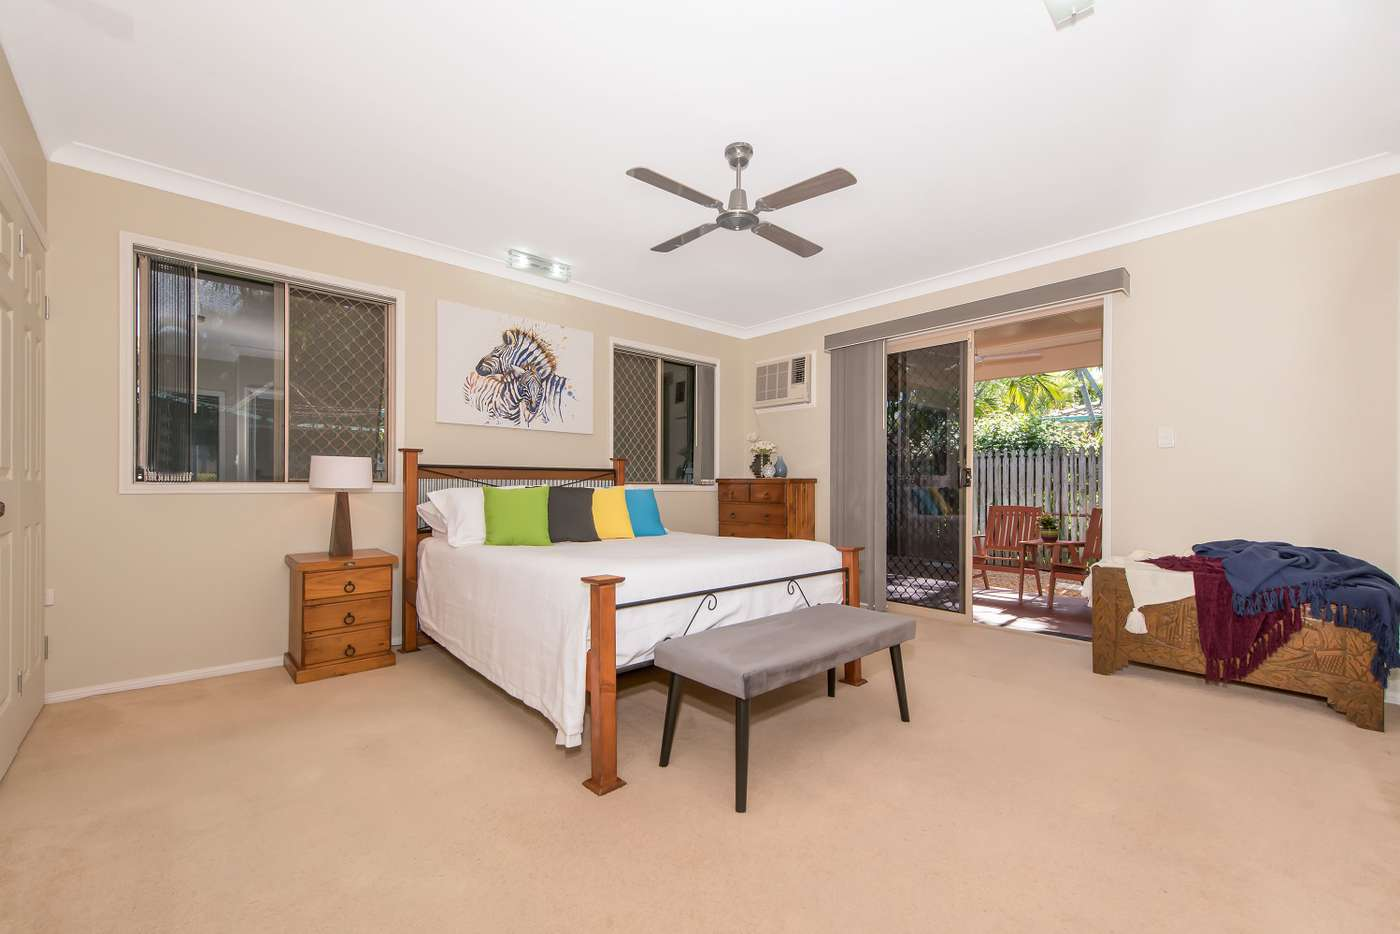 Fifth view of Homely house listing, 16 Chatsworth Crescent, Annandale QLD 4814